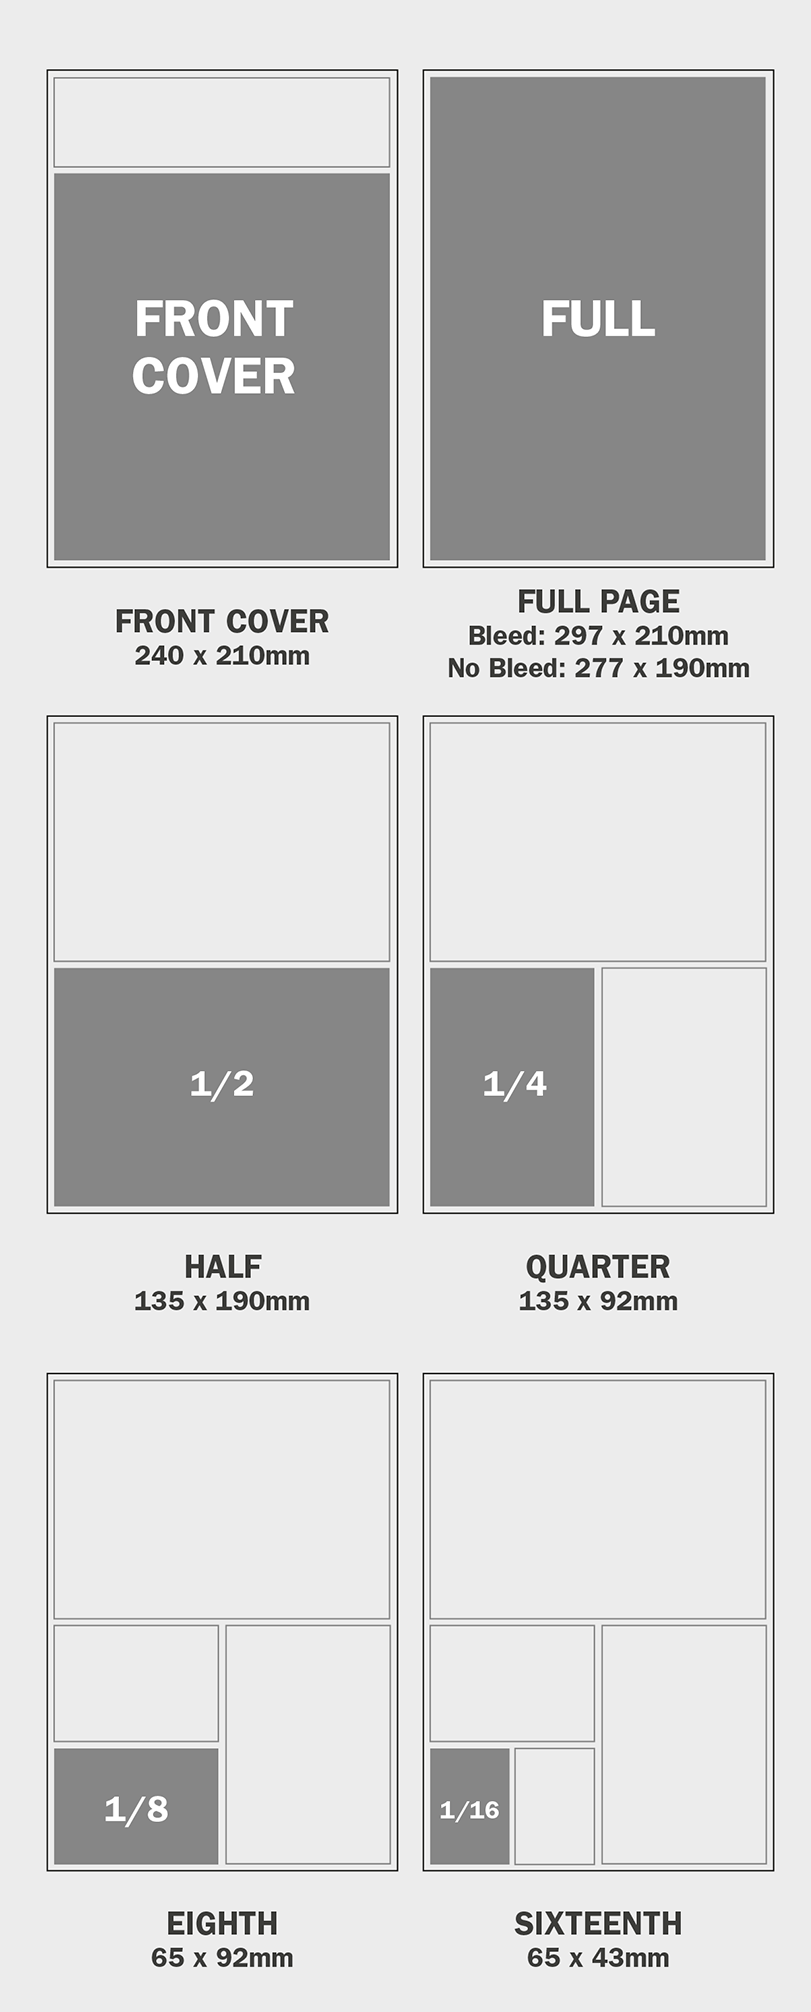 page_sizes